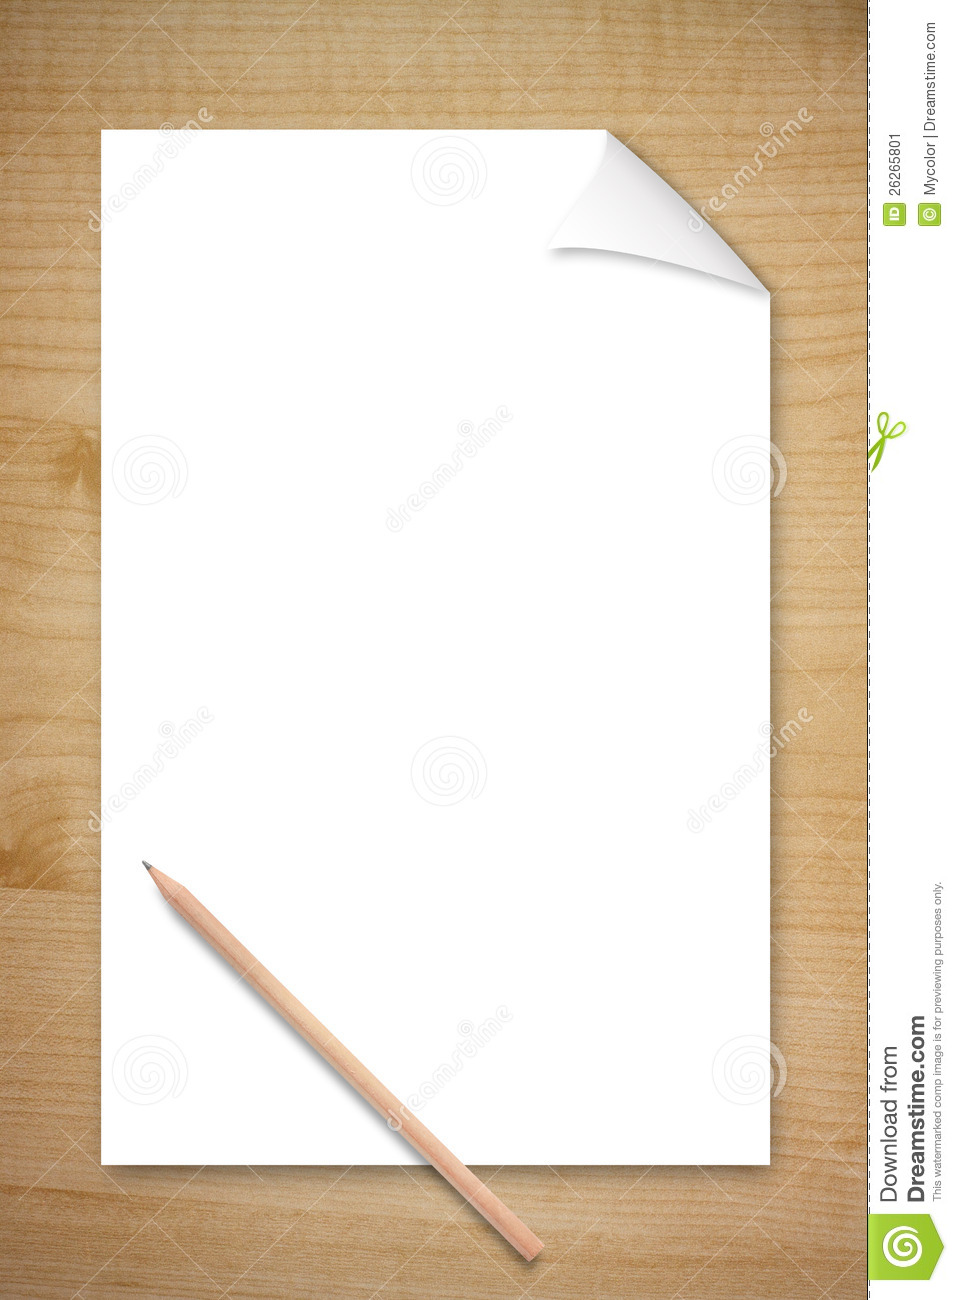 Blank Paper And Pencil On Wooden Table Stock Image - Image: 26265801